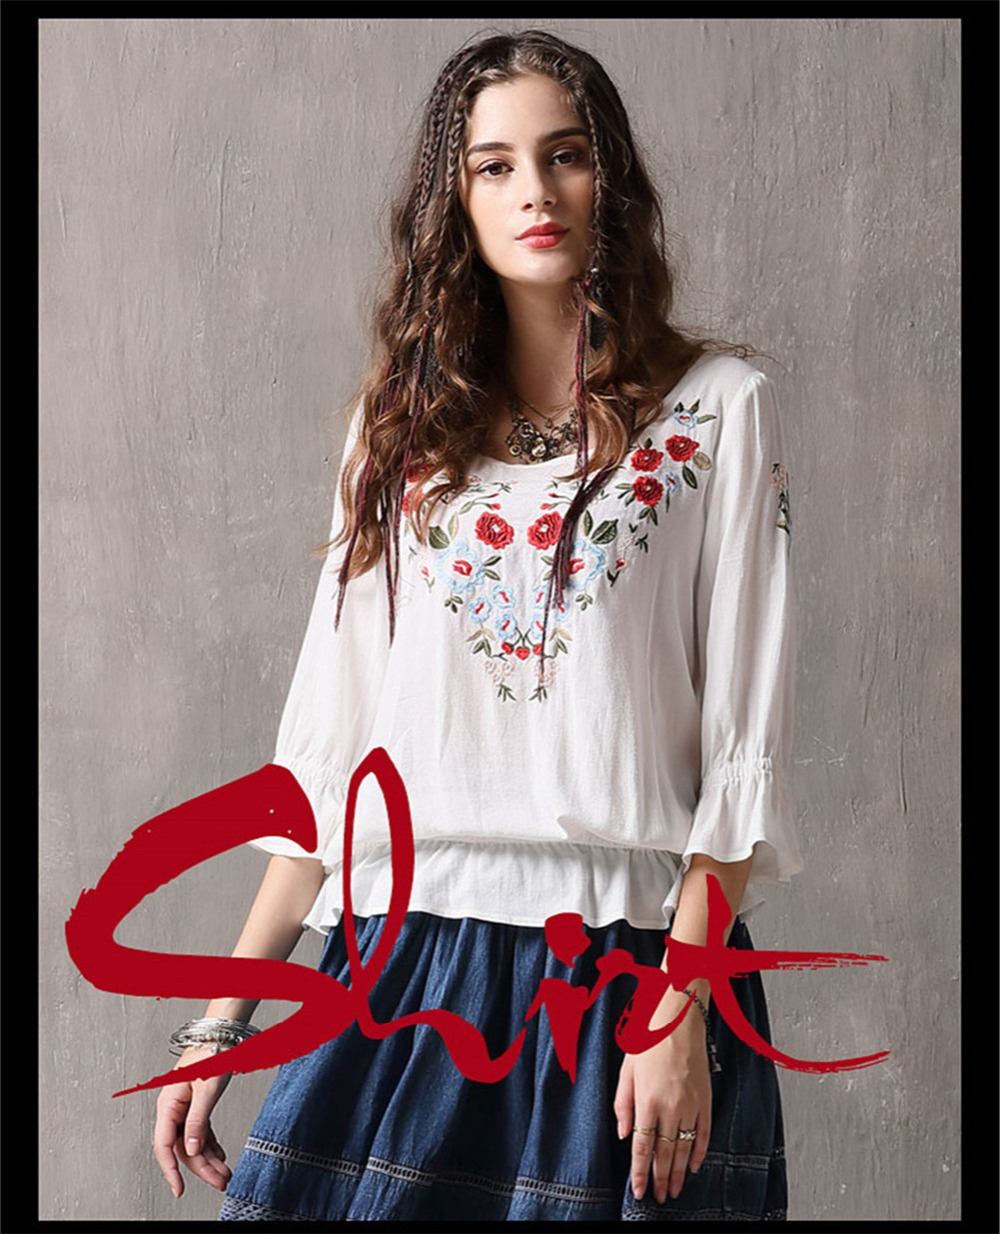 Spring 100% Cotton Women Loose Blouses Shirts 2020 Vintage Blusas O-Neck Flare Sleeve Floral Embroidery White Women`s Shirt 9260 (1)